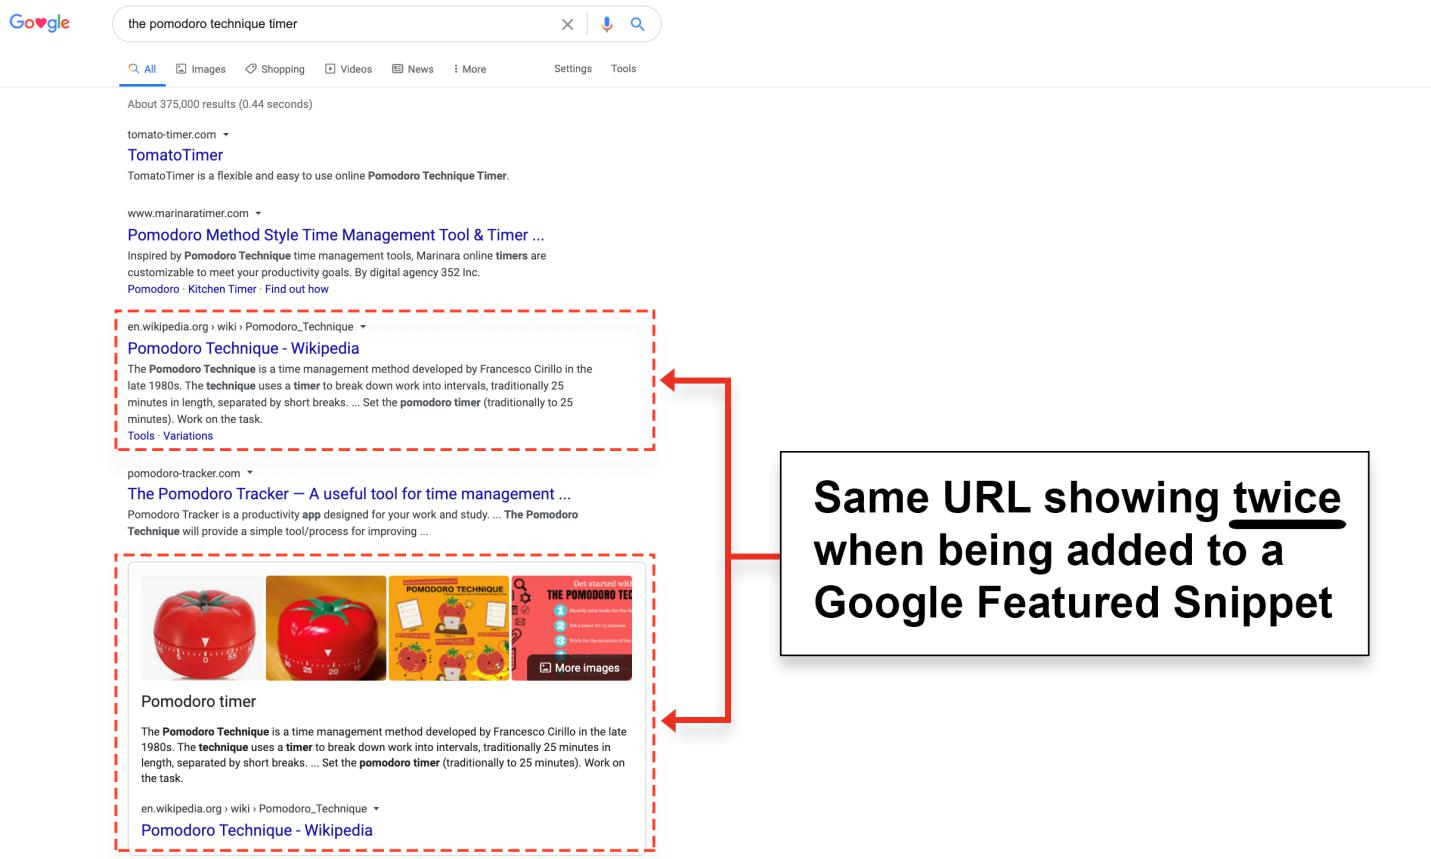 benefits of featured snippet